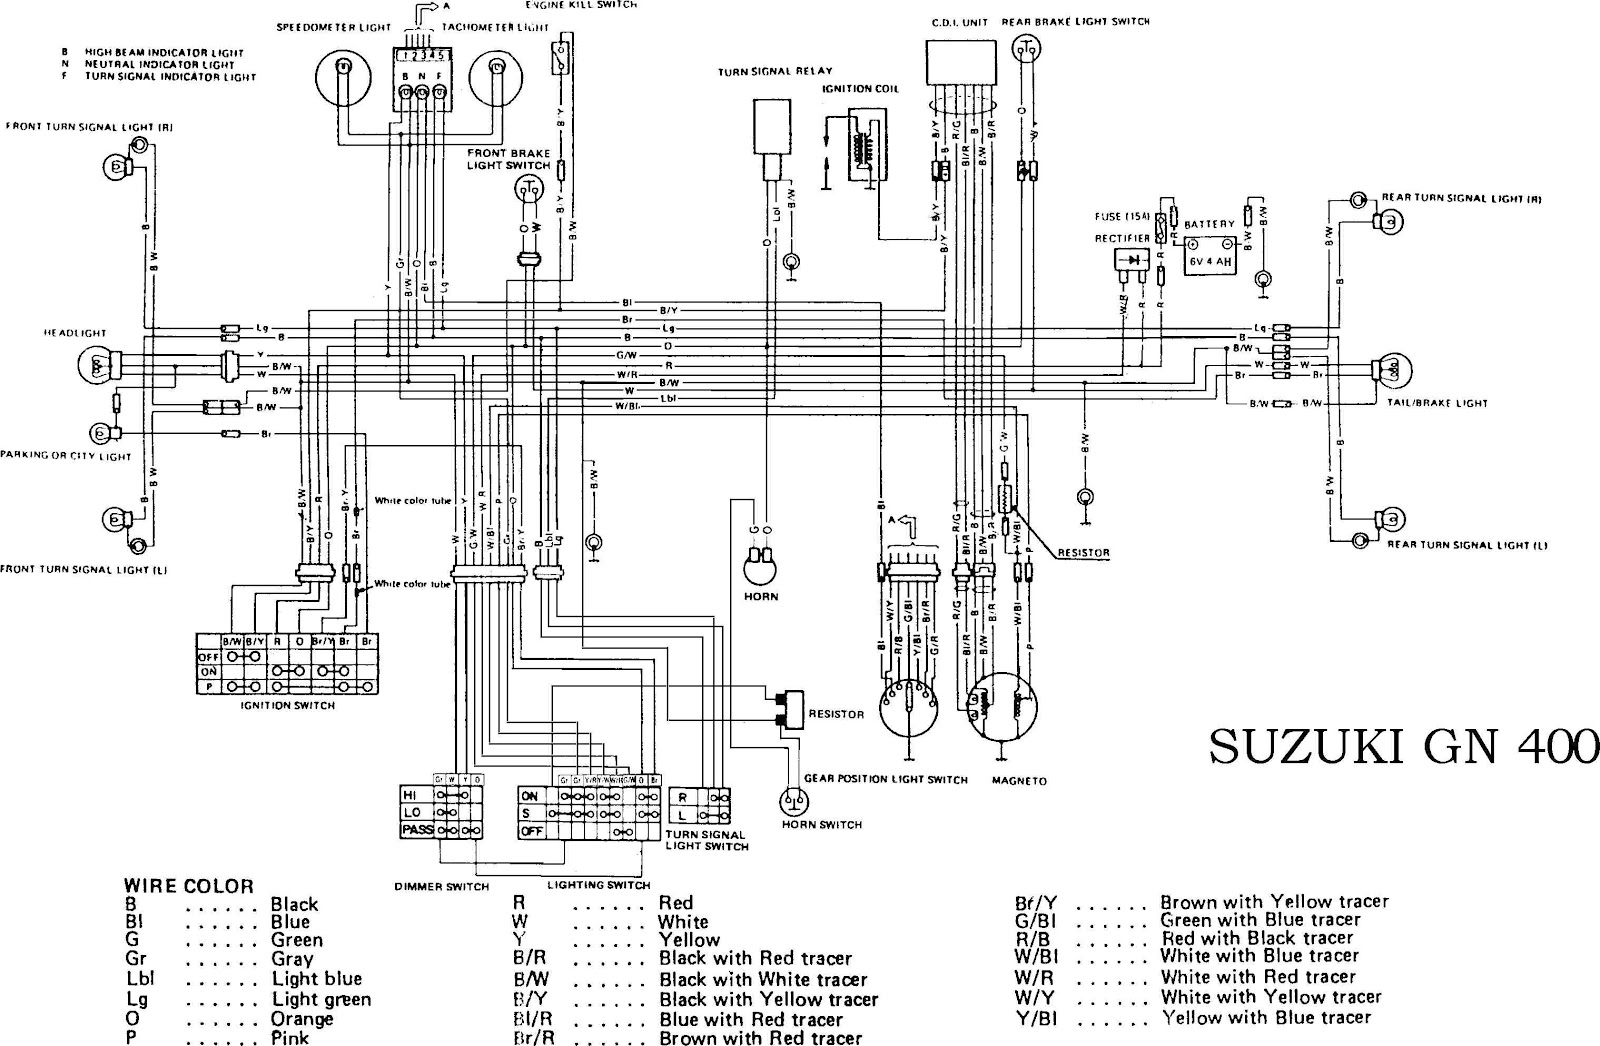 Suzuki+GN400+motorcycle+Complete+Electrical+Wiring+Diagram?resize\=665%2C435 suzuki gn 125 wiring diagram suzuki 125 three wheeler \u2022 wiring 2001 Suzuki Intruder 1400 Specifications at gsmx.co